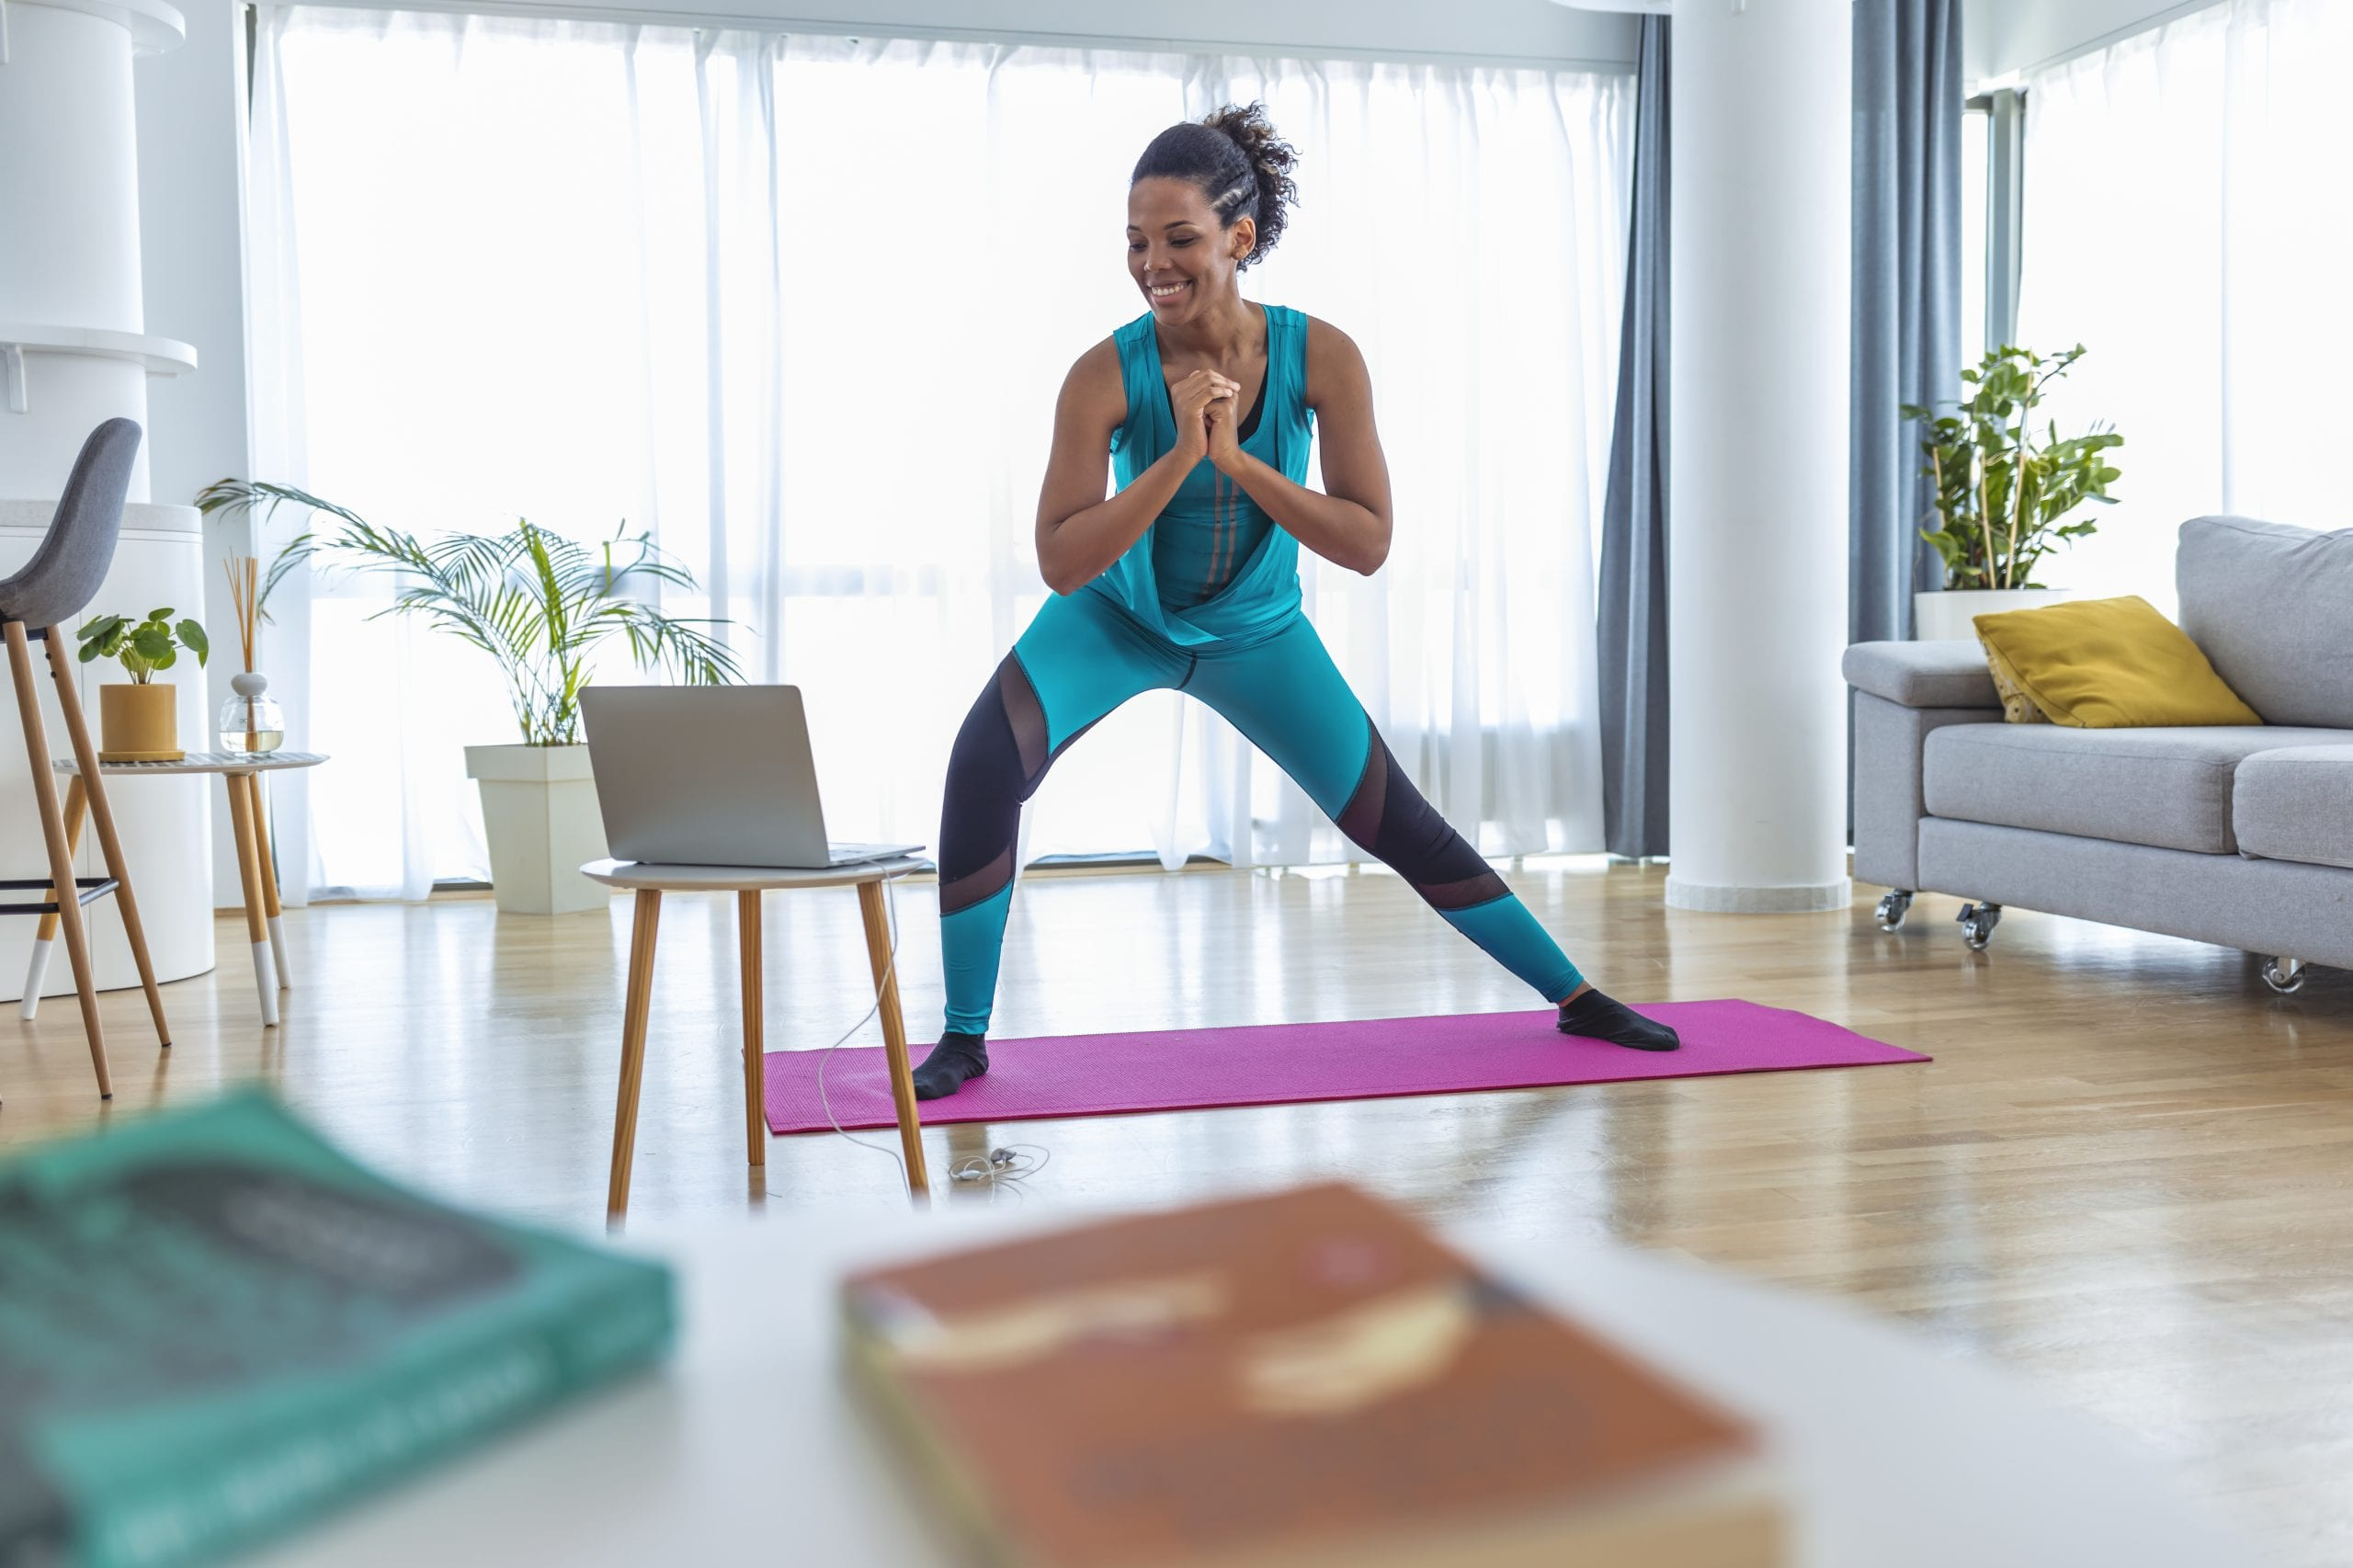 Beautiful African-American Woman Exercising Pilates, Yoga, Fitness at Home Looking at the Laptop.